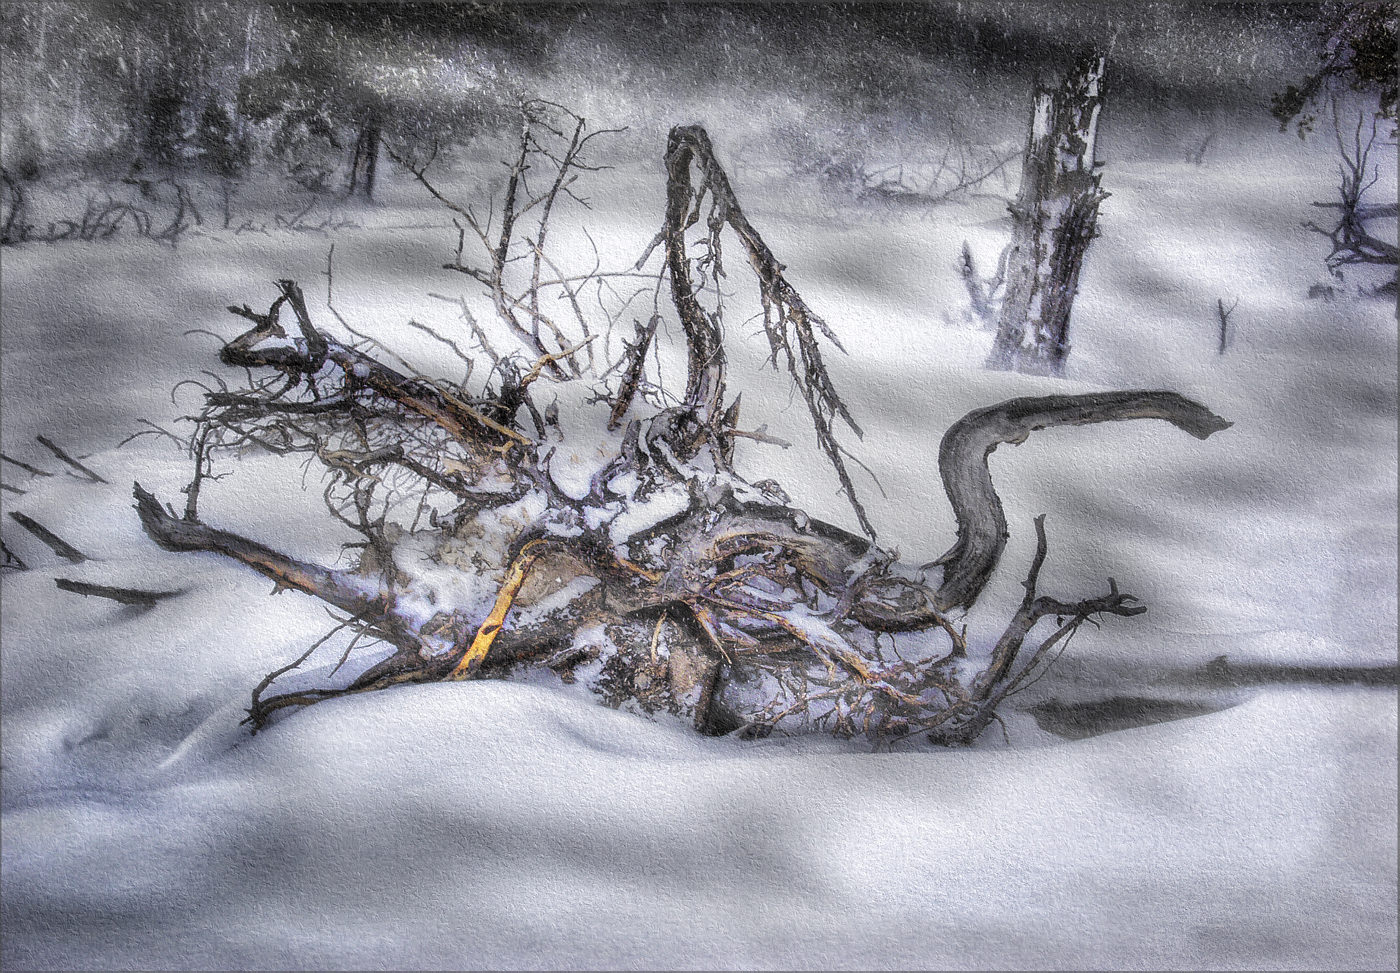 Colour Print - 1st Place: Winter Roots by Colin Stacey